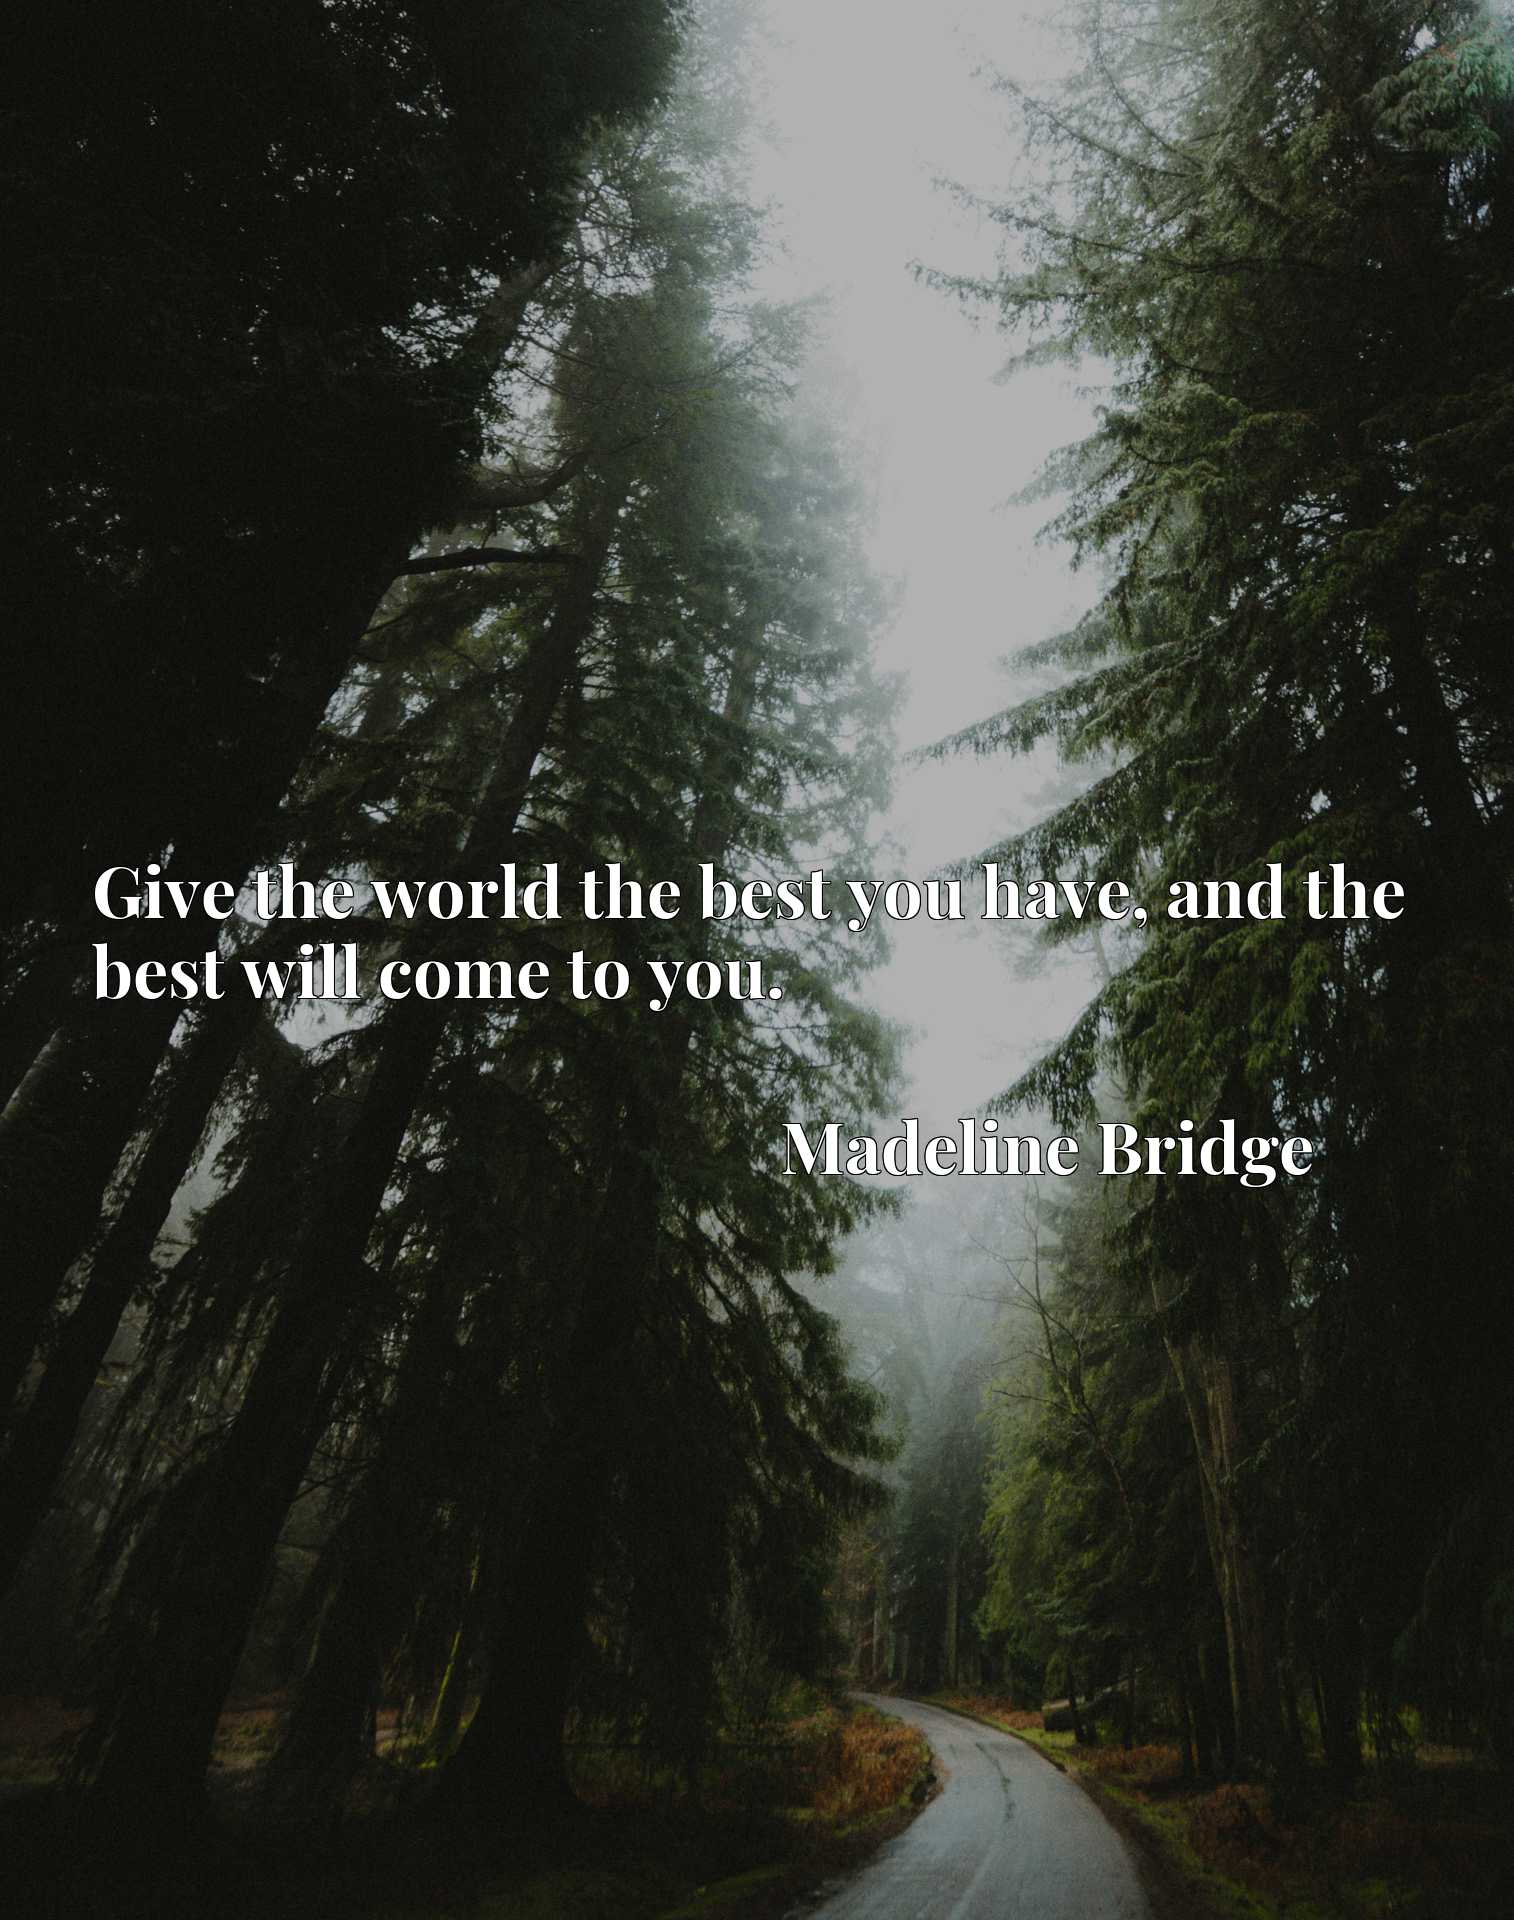 Quote Picture :Give the world the best you have, and the best will come to you.